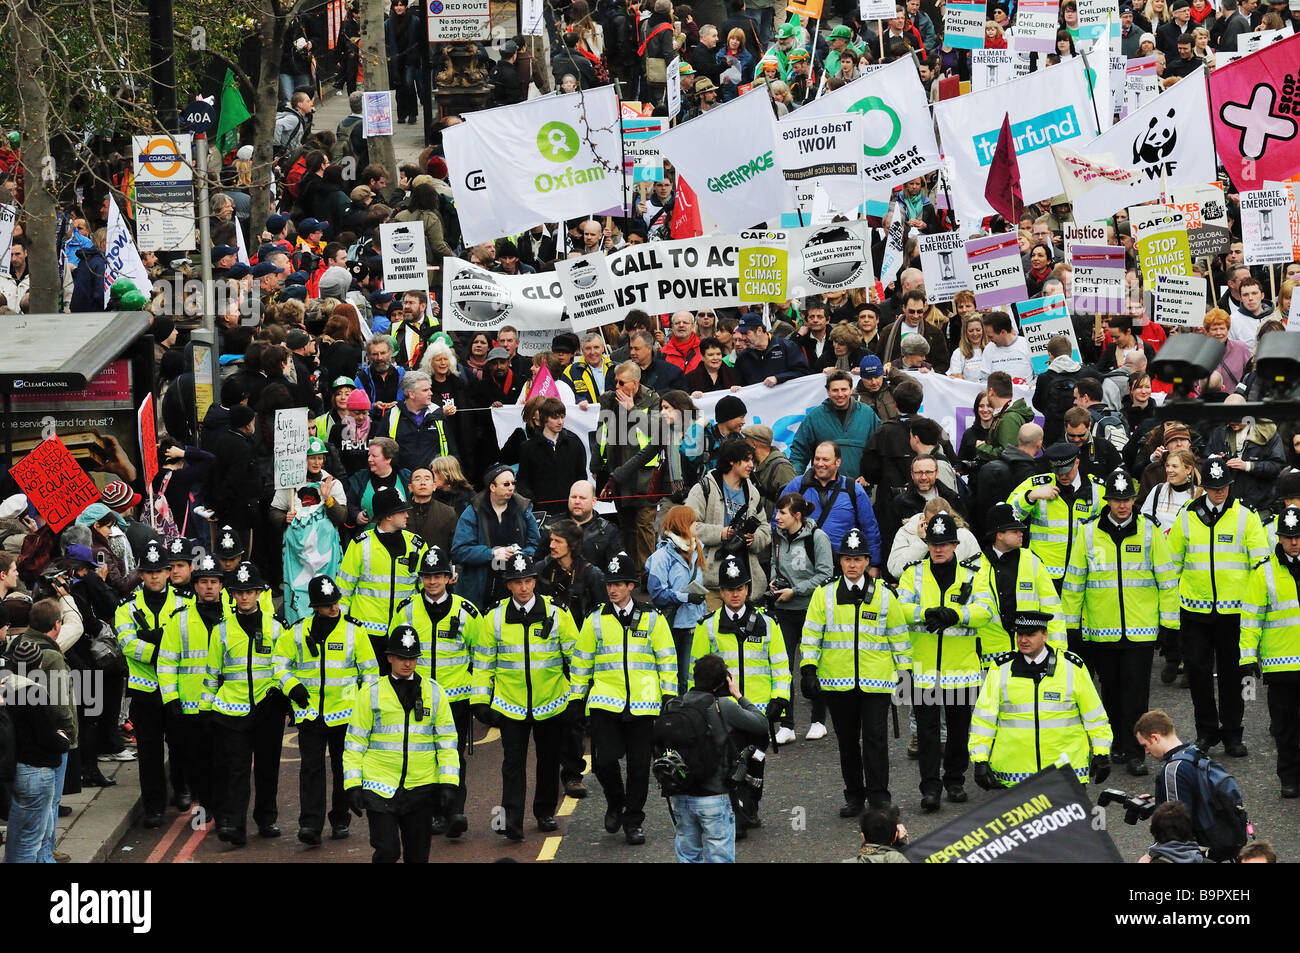 'Put People First' demonstration ahead of the G20 meeting in London, 2009 - Stock Image